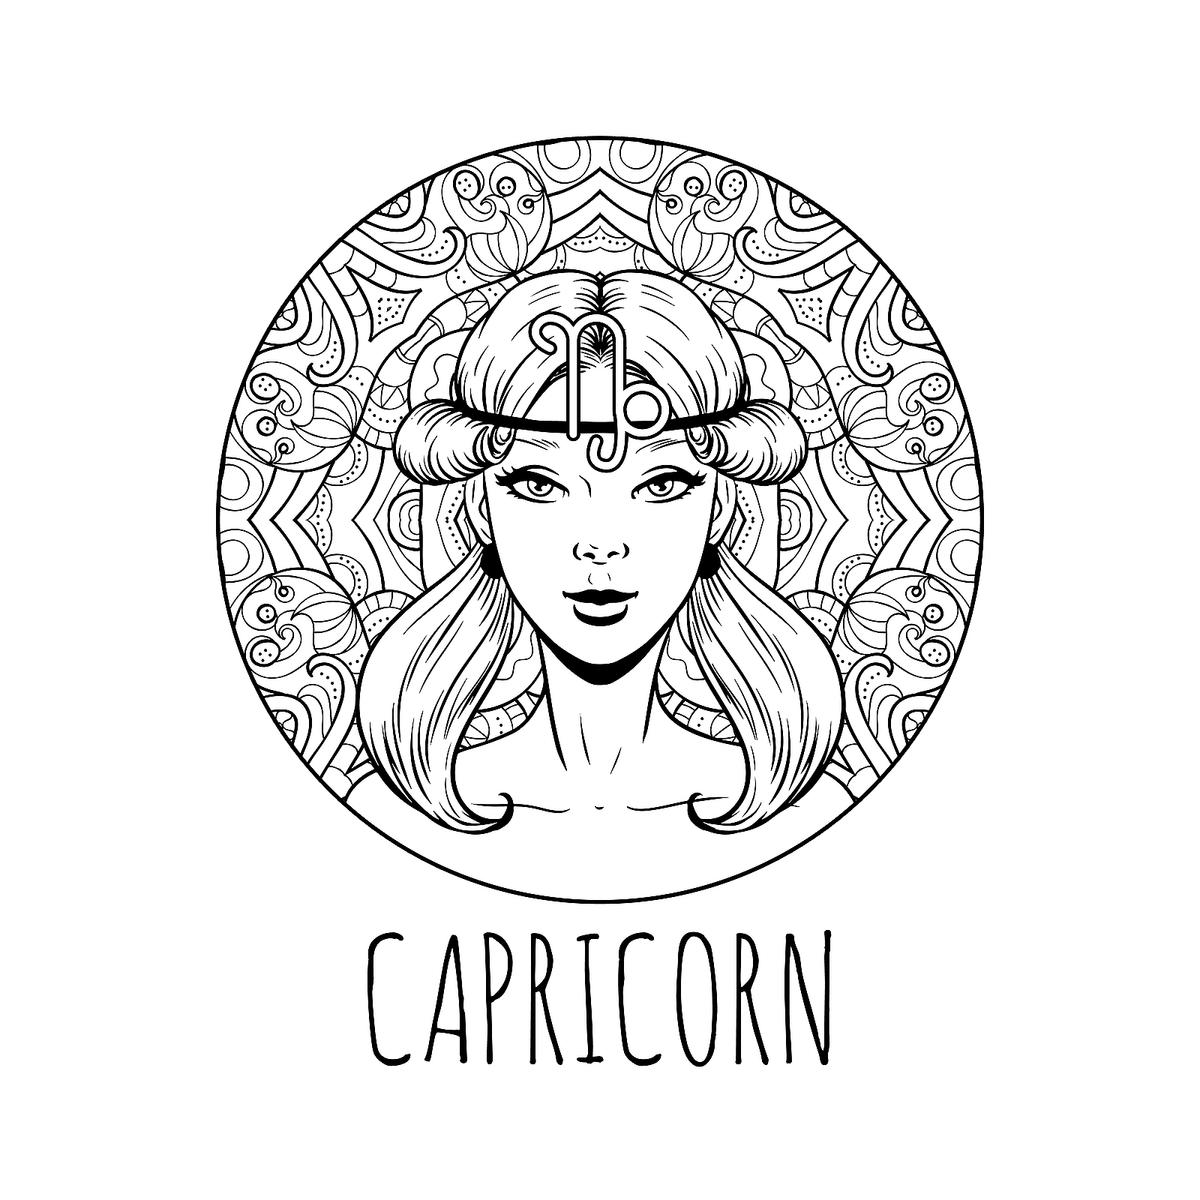 zodiac signs coloring pages taurus zodiac sign coloring page free printable coloring coloring zodiac pages signs